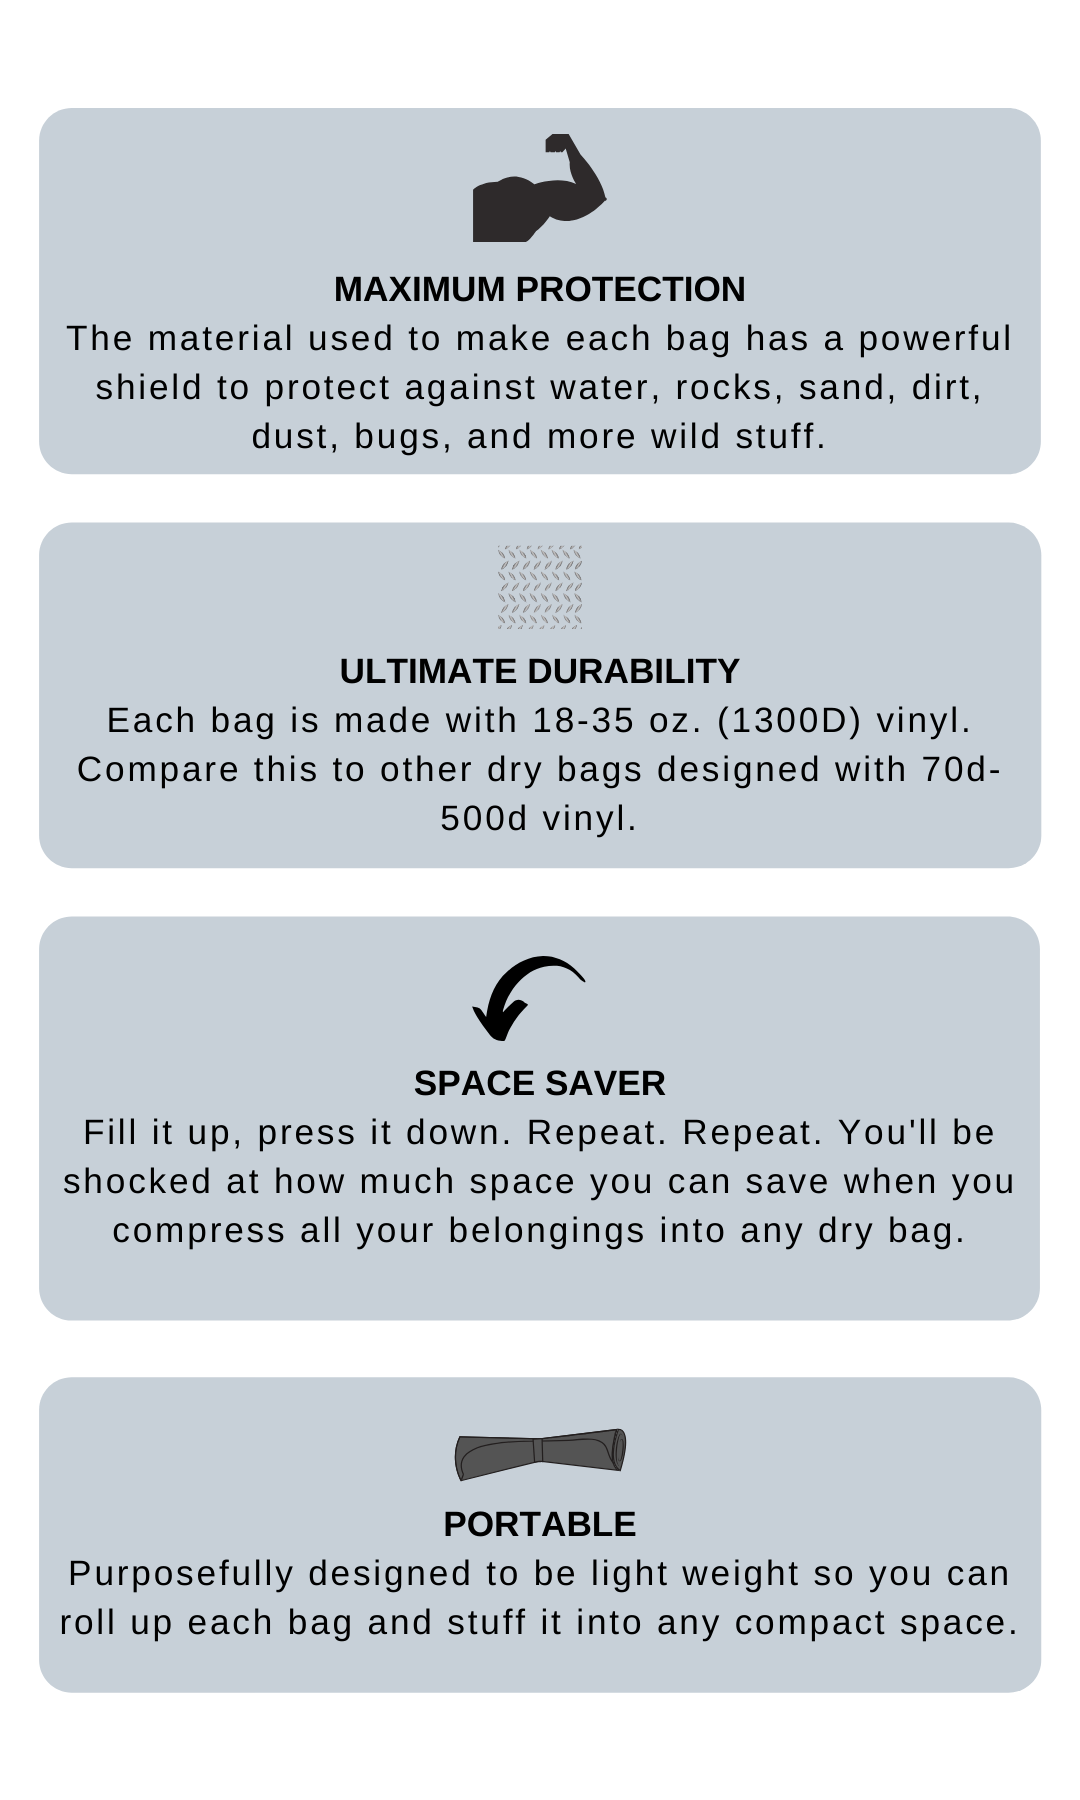 paddle idaho dry bag benefits